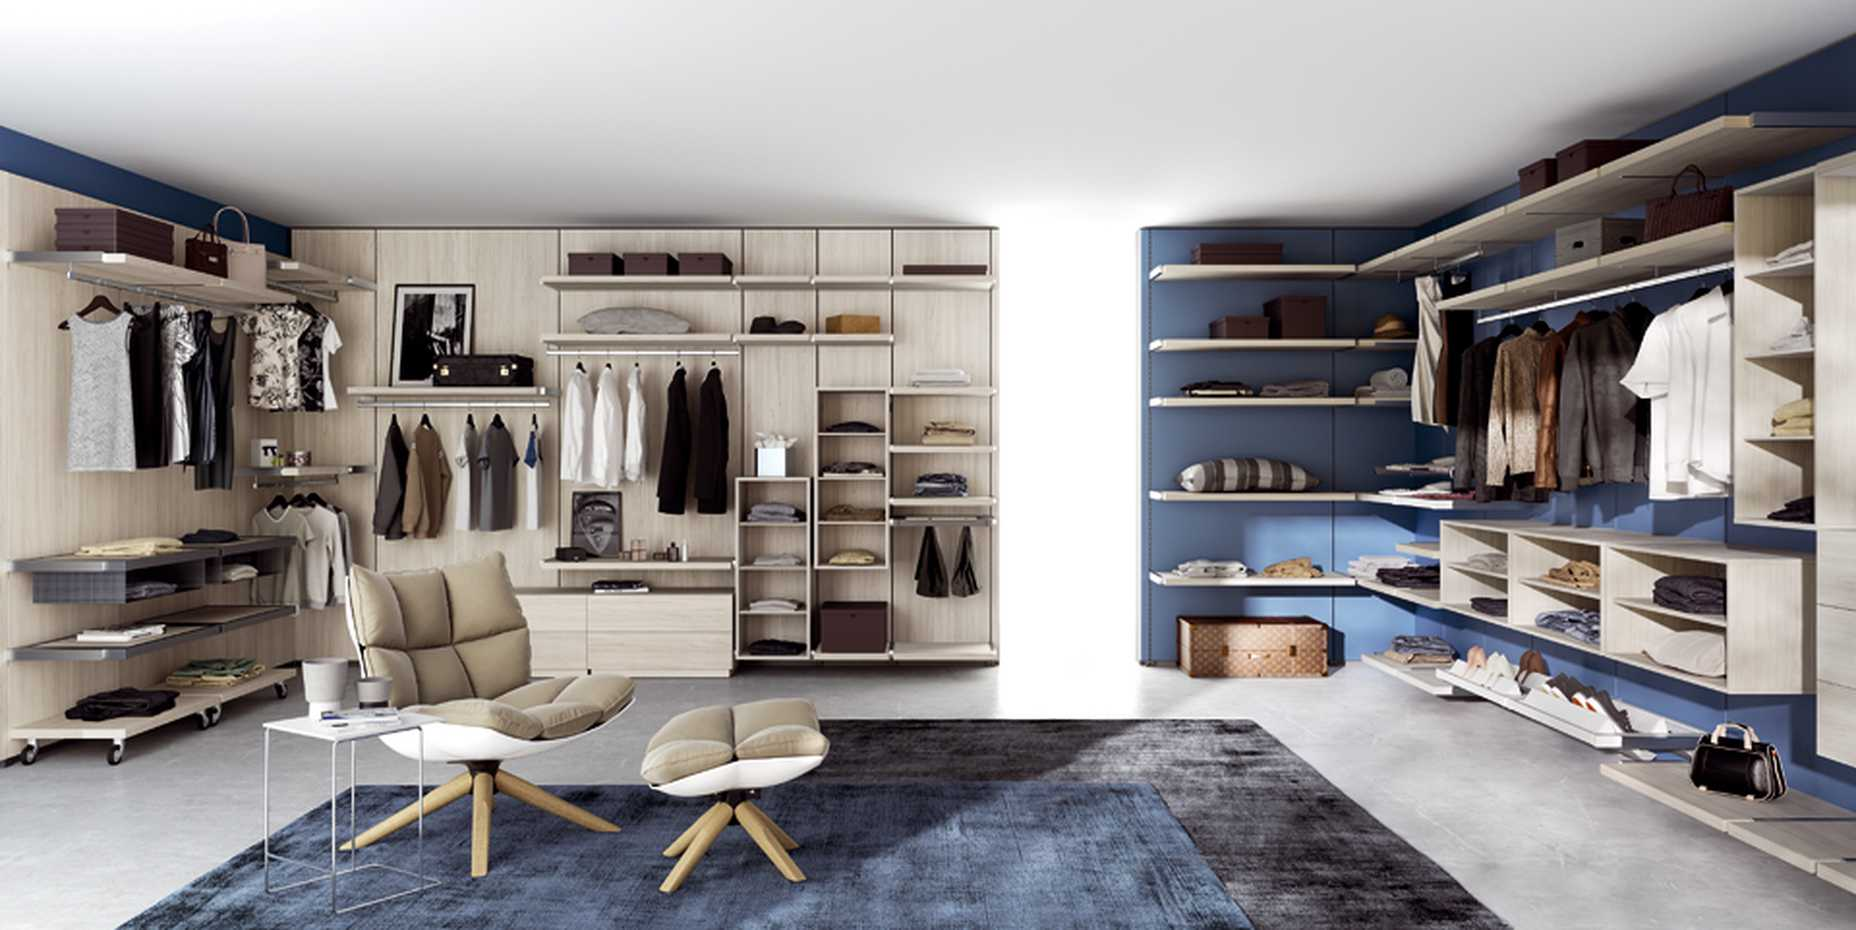 Rack Walk-in Wardrobe by Mercantini product image 1